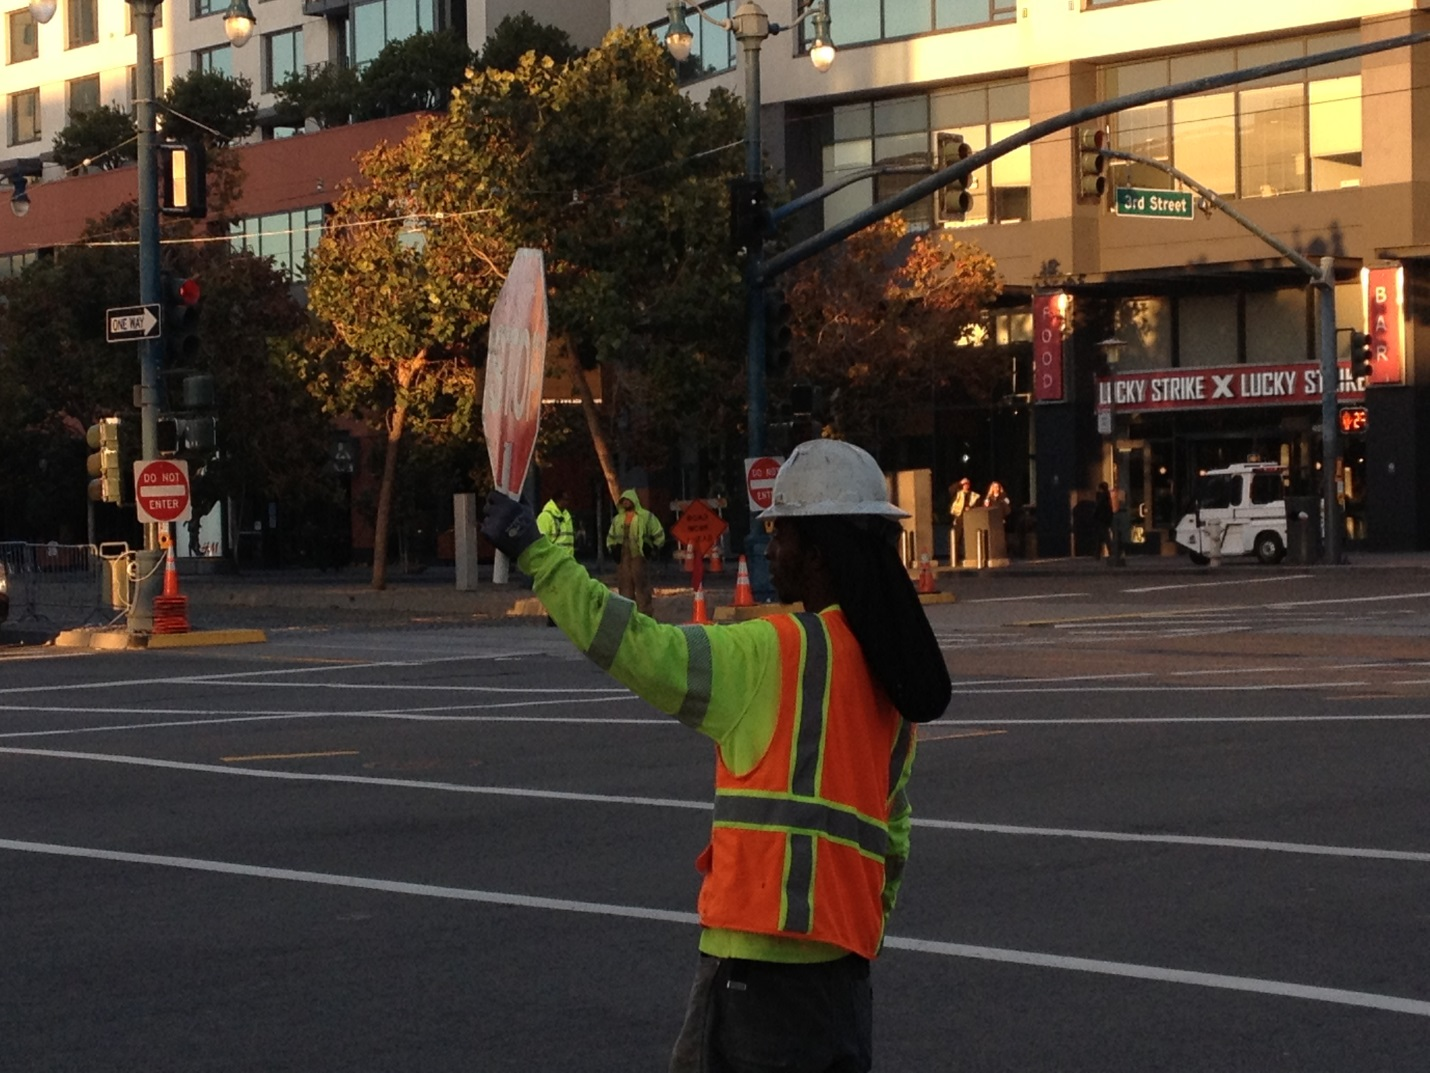 A woman in a safety vest and hard hat holds up a stop sign in the middle of the 4th and King intersection.